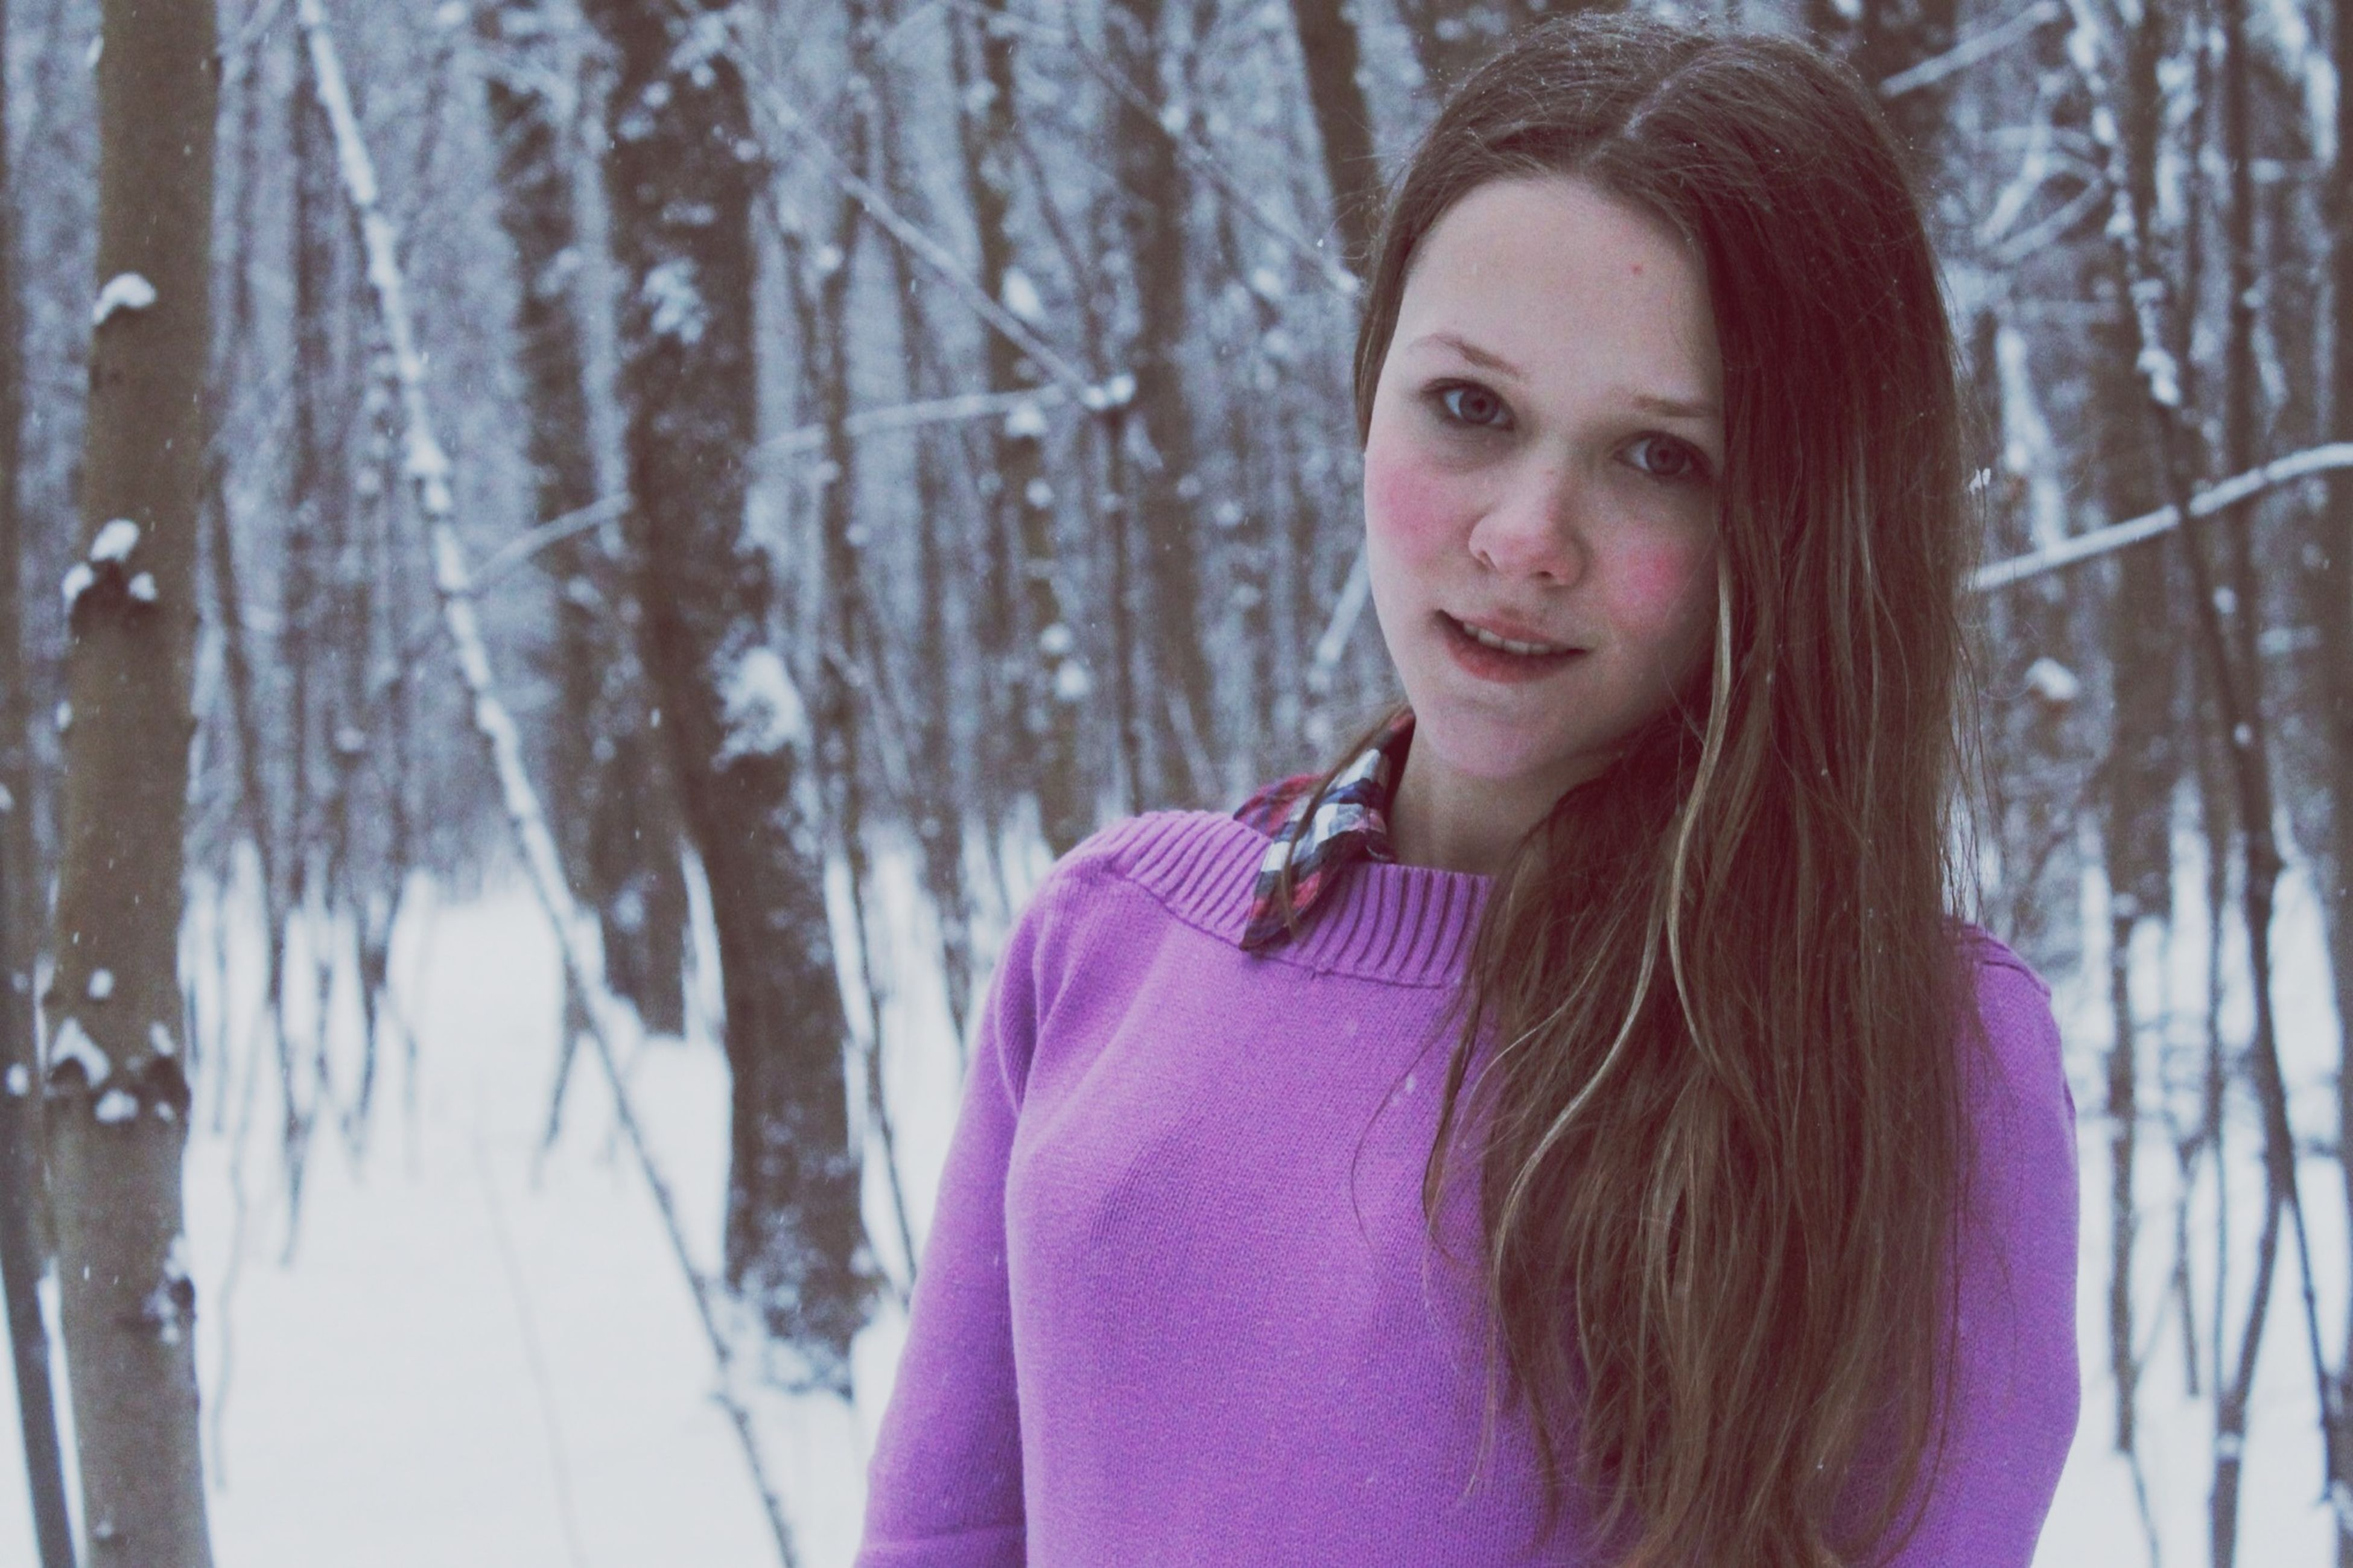 person, portrait, looking at camera, young adult, lifestyles, front view, casual clothing, leisure activity, headshot, young women, smiling, long hair, focus on foreground, tree, brown hair, waist up, happiness